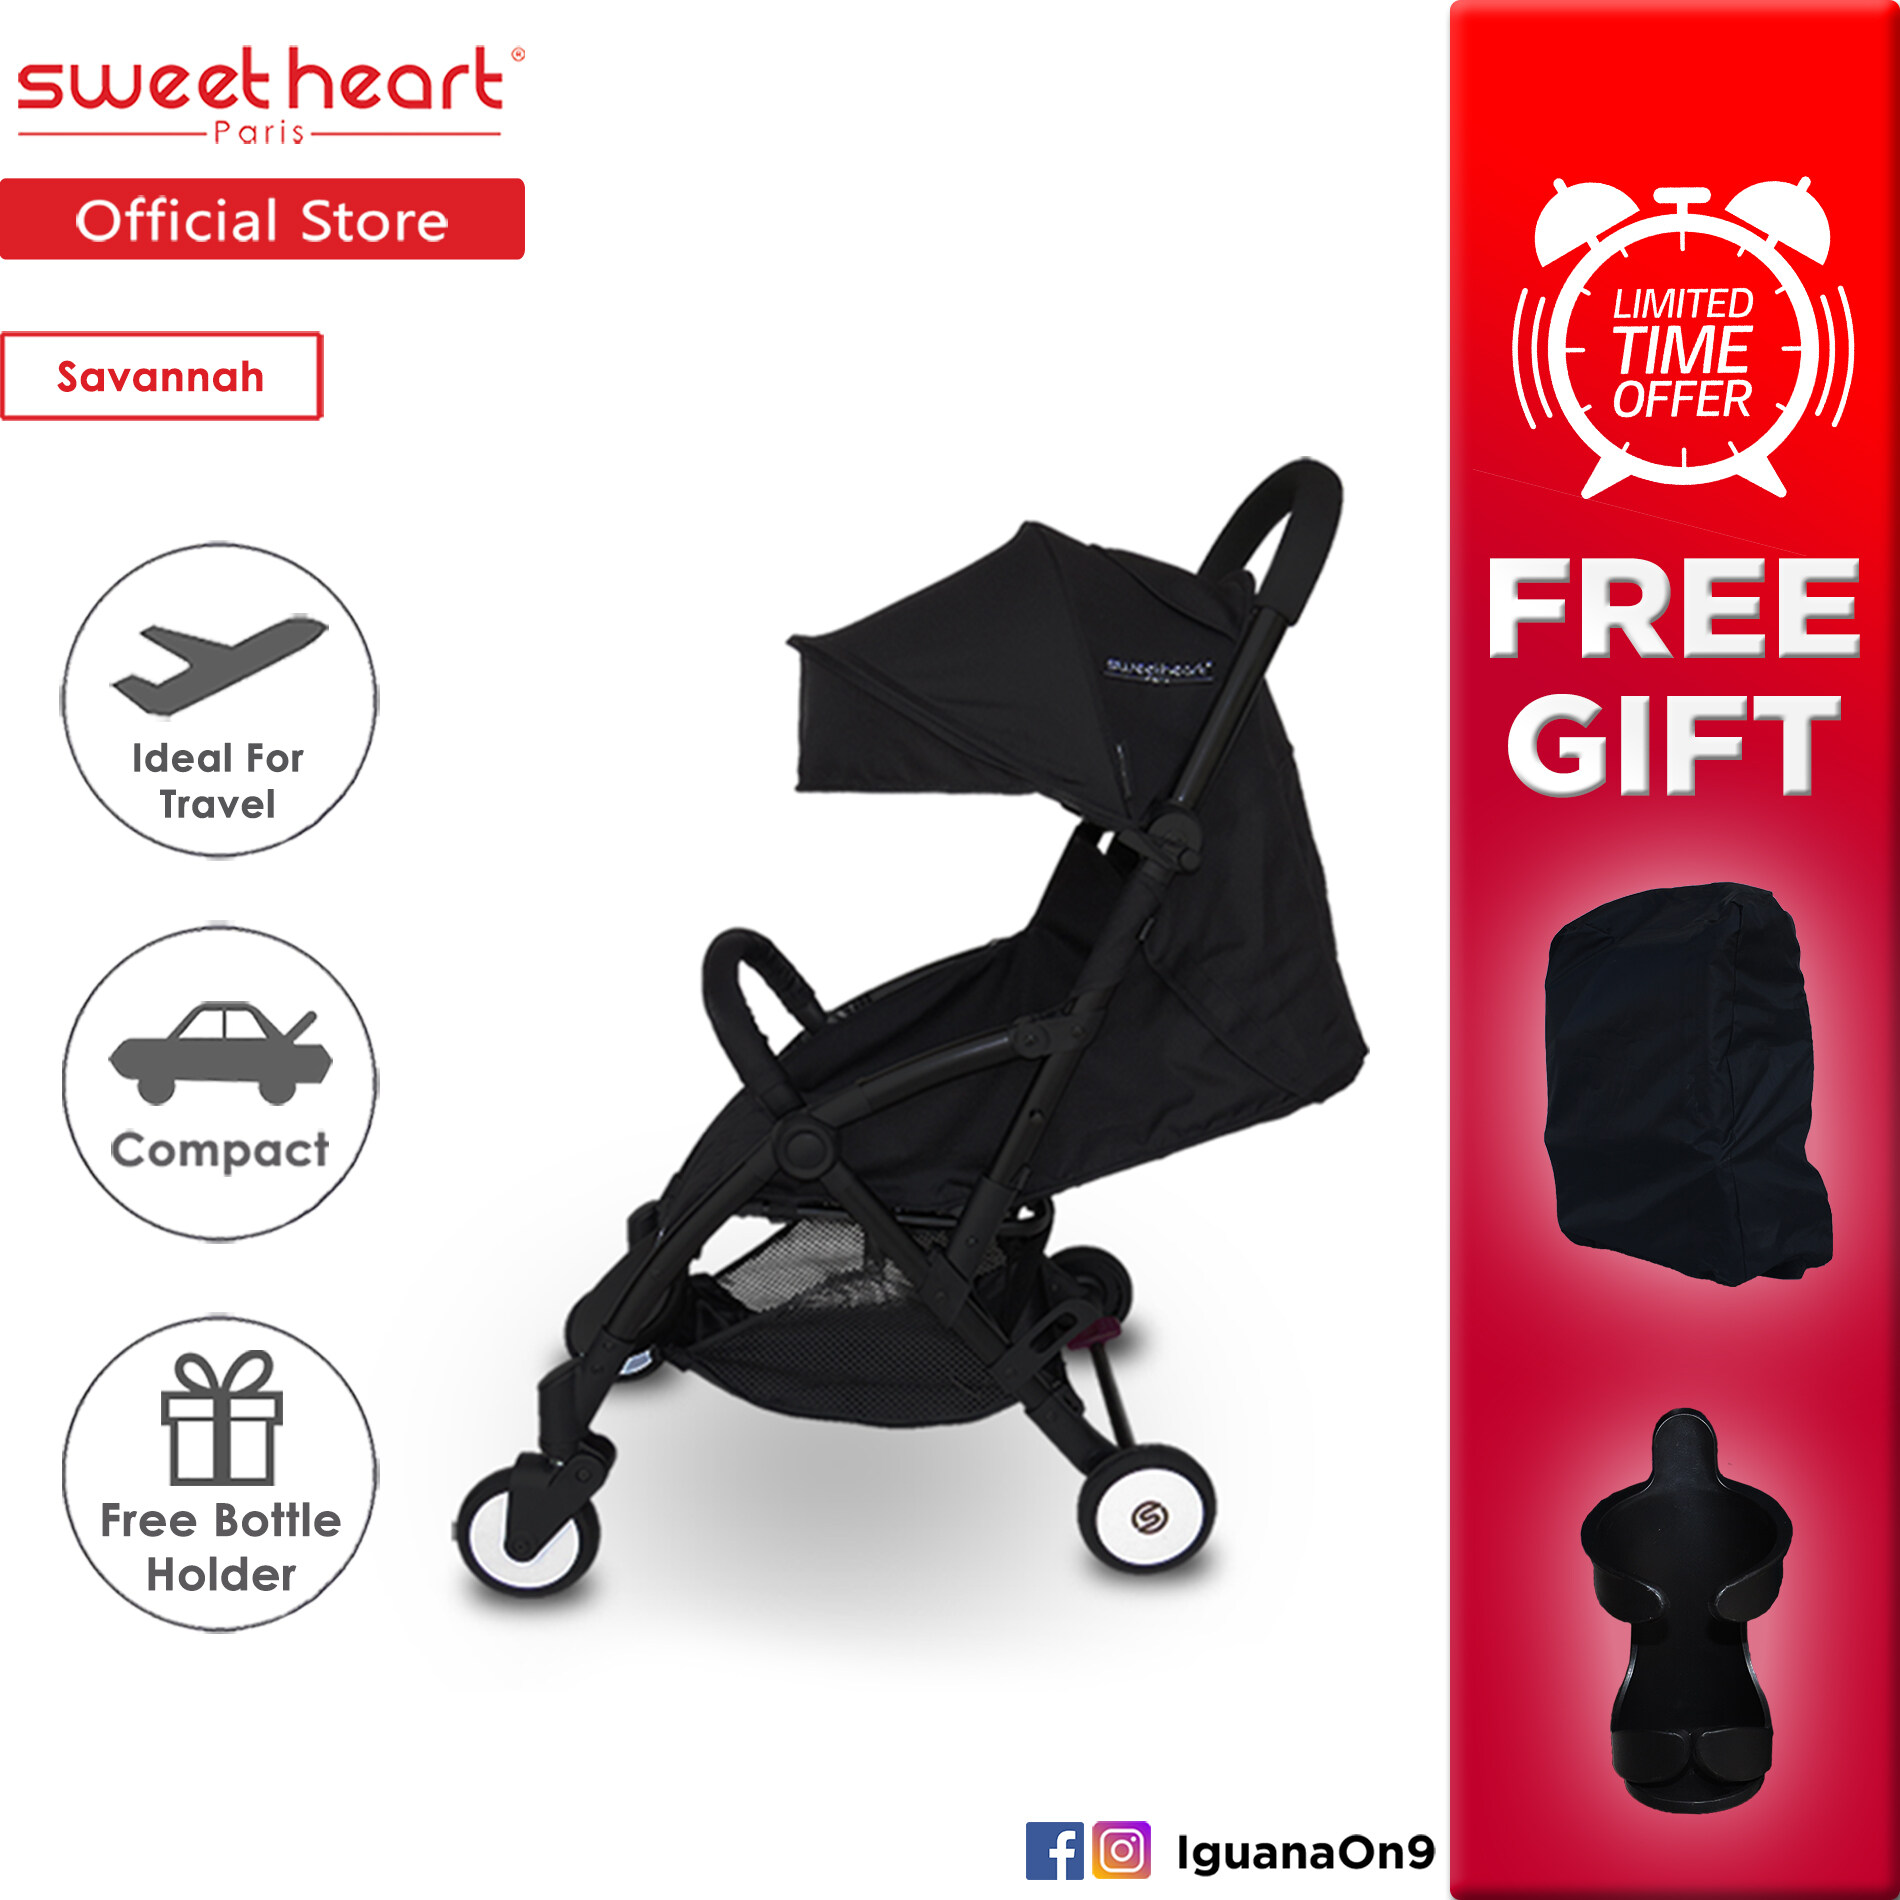 Young Versace Baby White Stroller And Travel Set Cny 2020 Sweet Heart Paris Compact Stroller Savannah Nero Black With Free Travel Bag